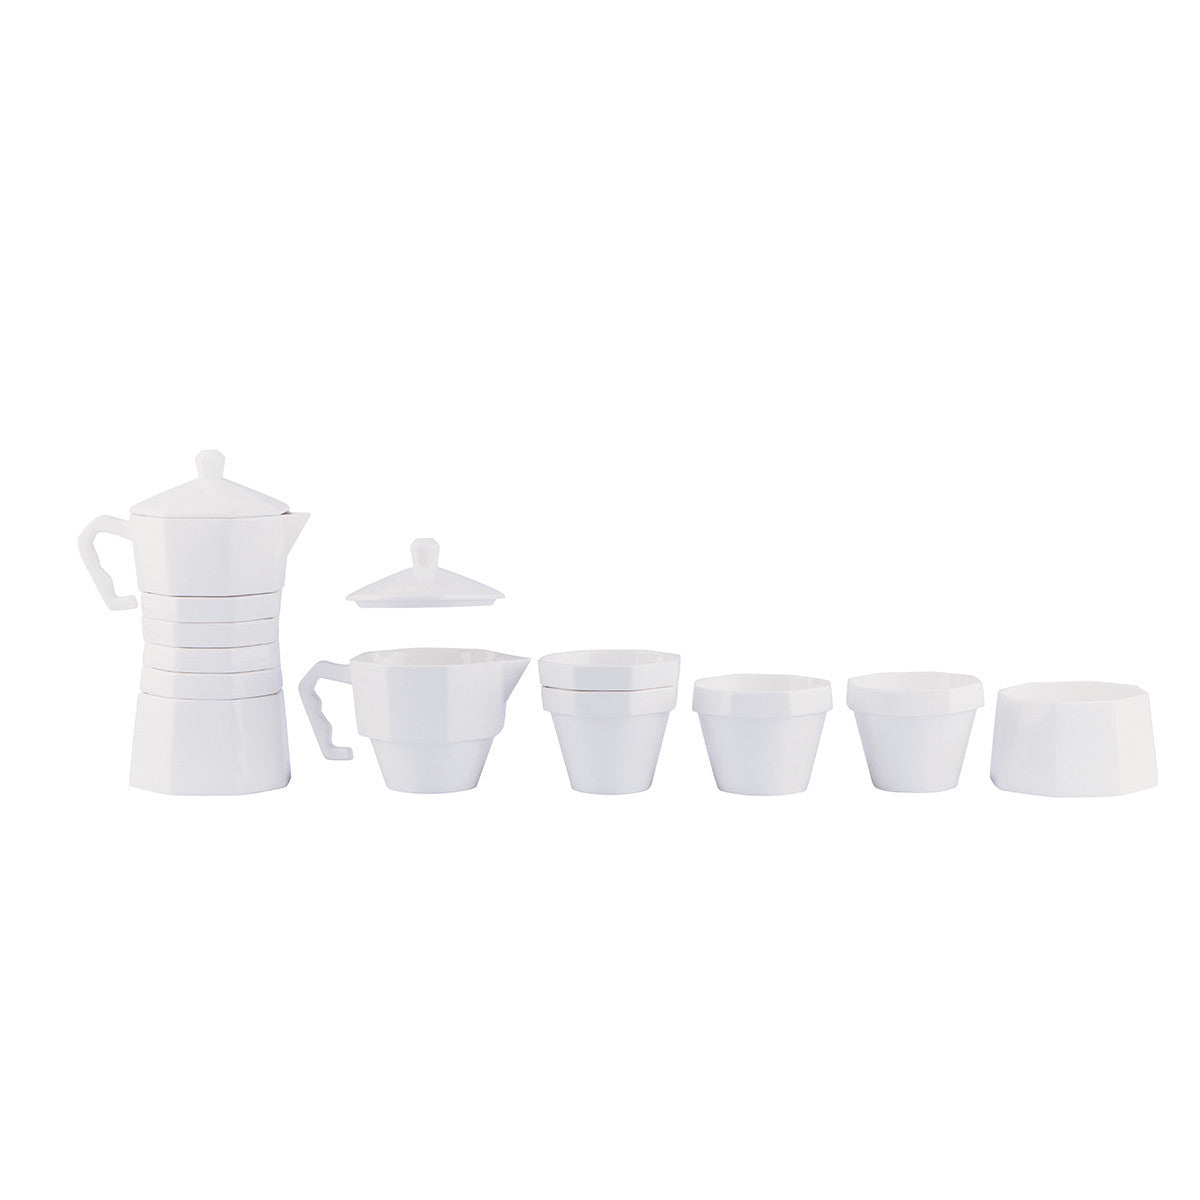 DOIY With Coffee Porcelain Coffee Set